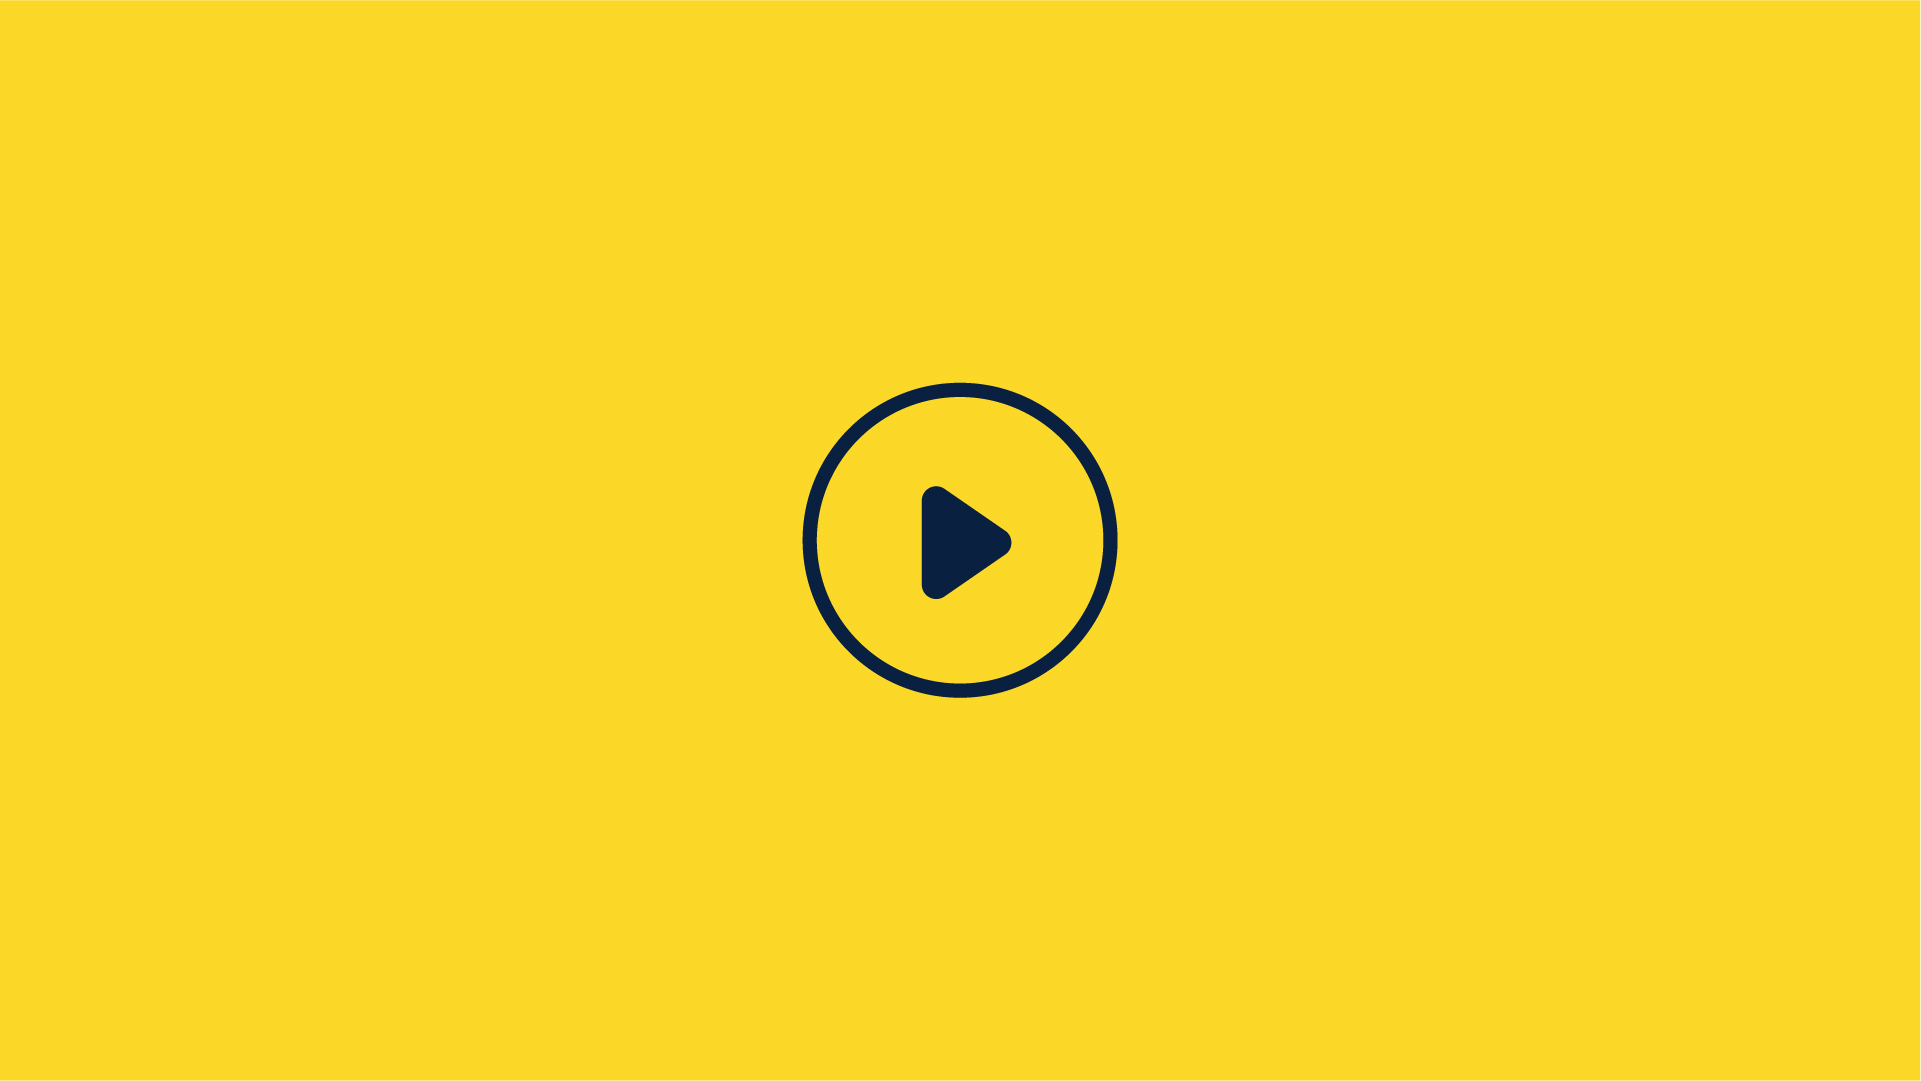 Video play image